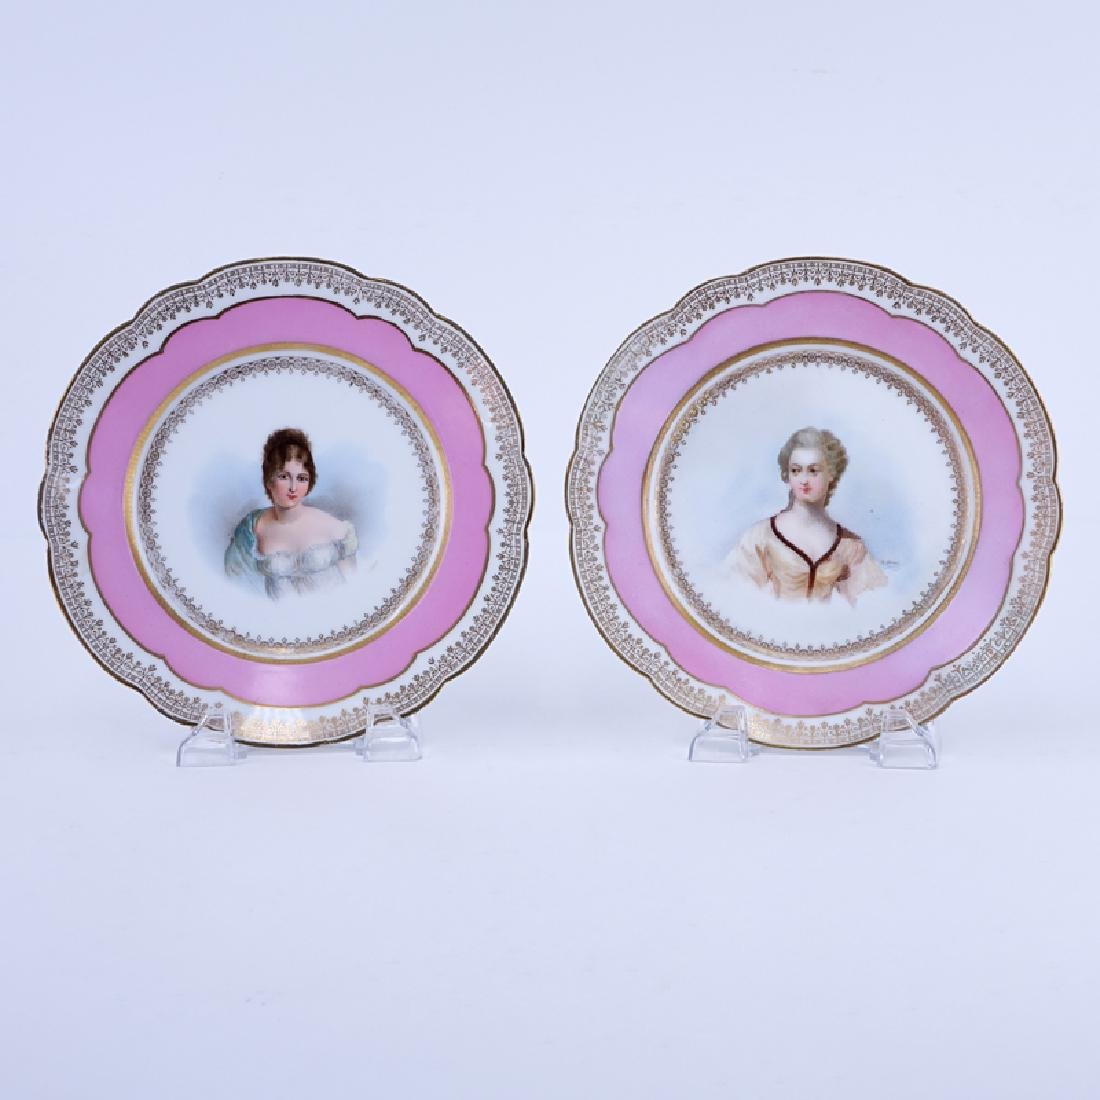 Pair of 19/20th Century Sevres Porcelain Chateau de